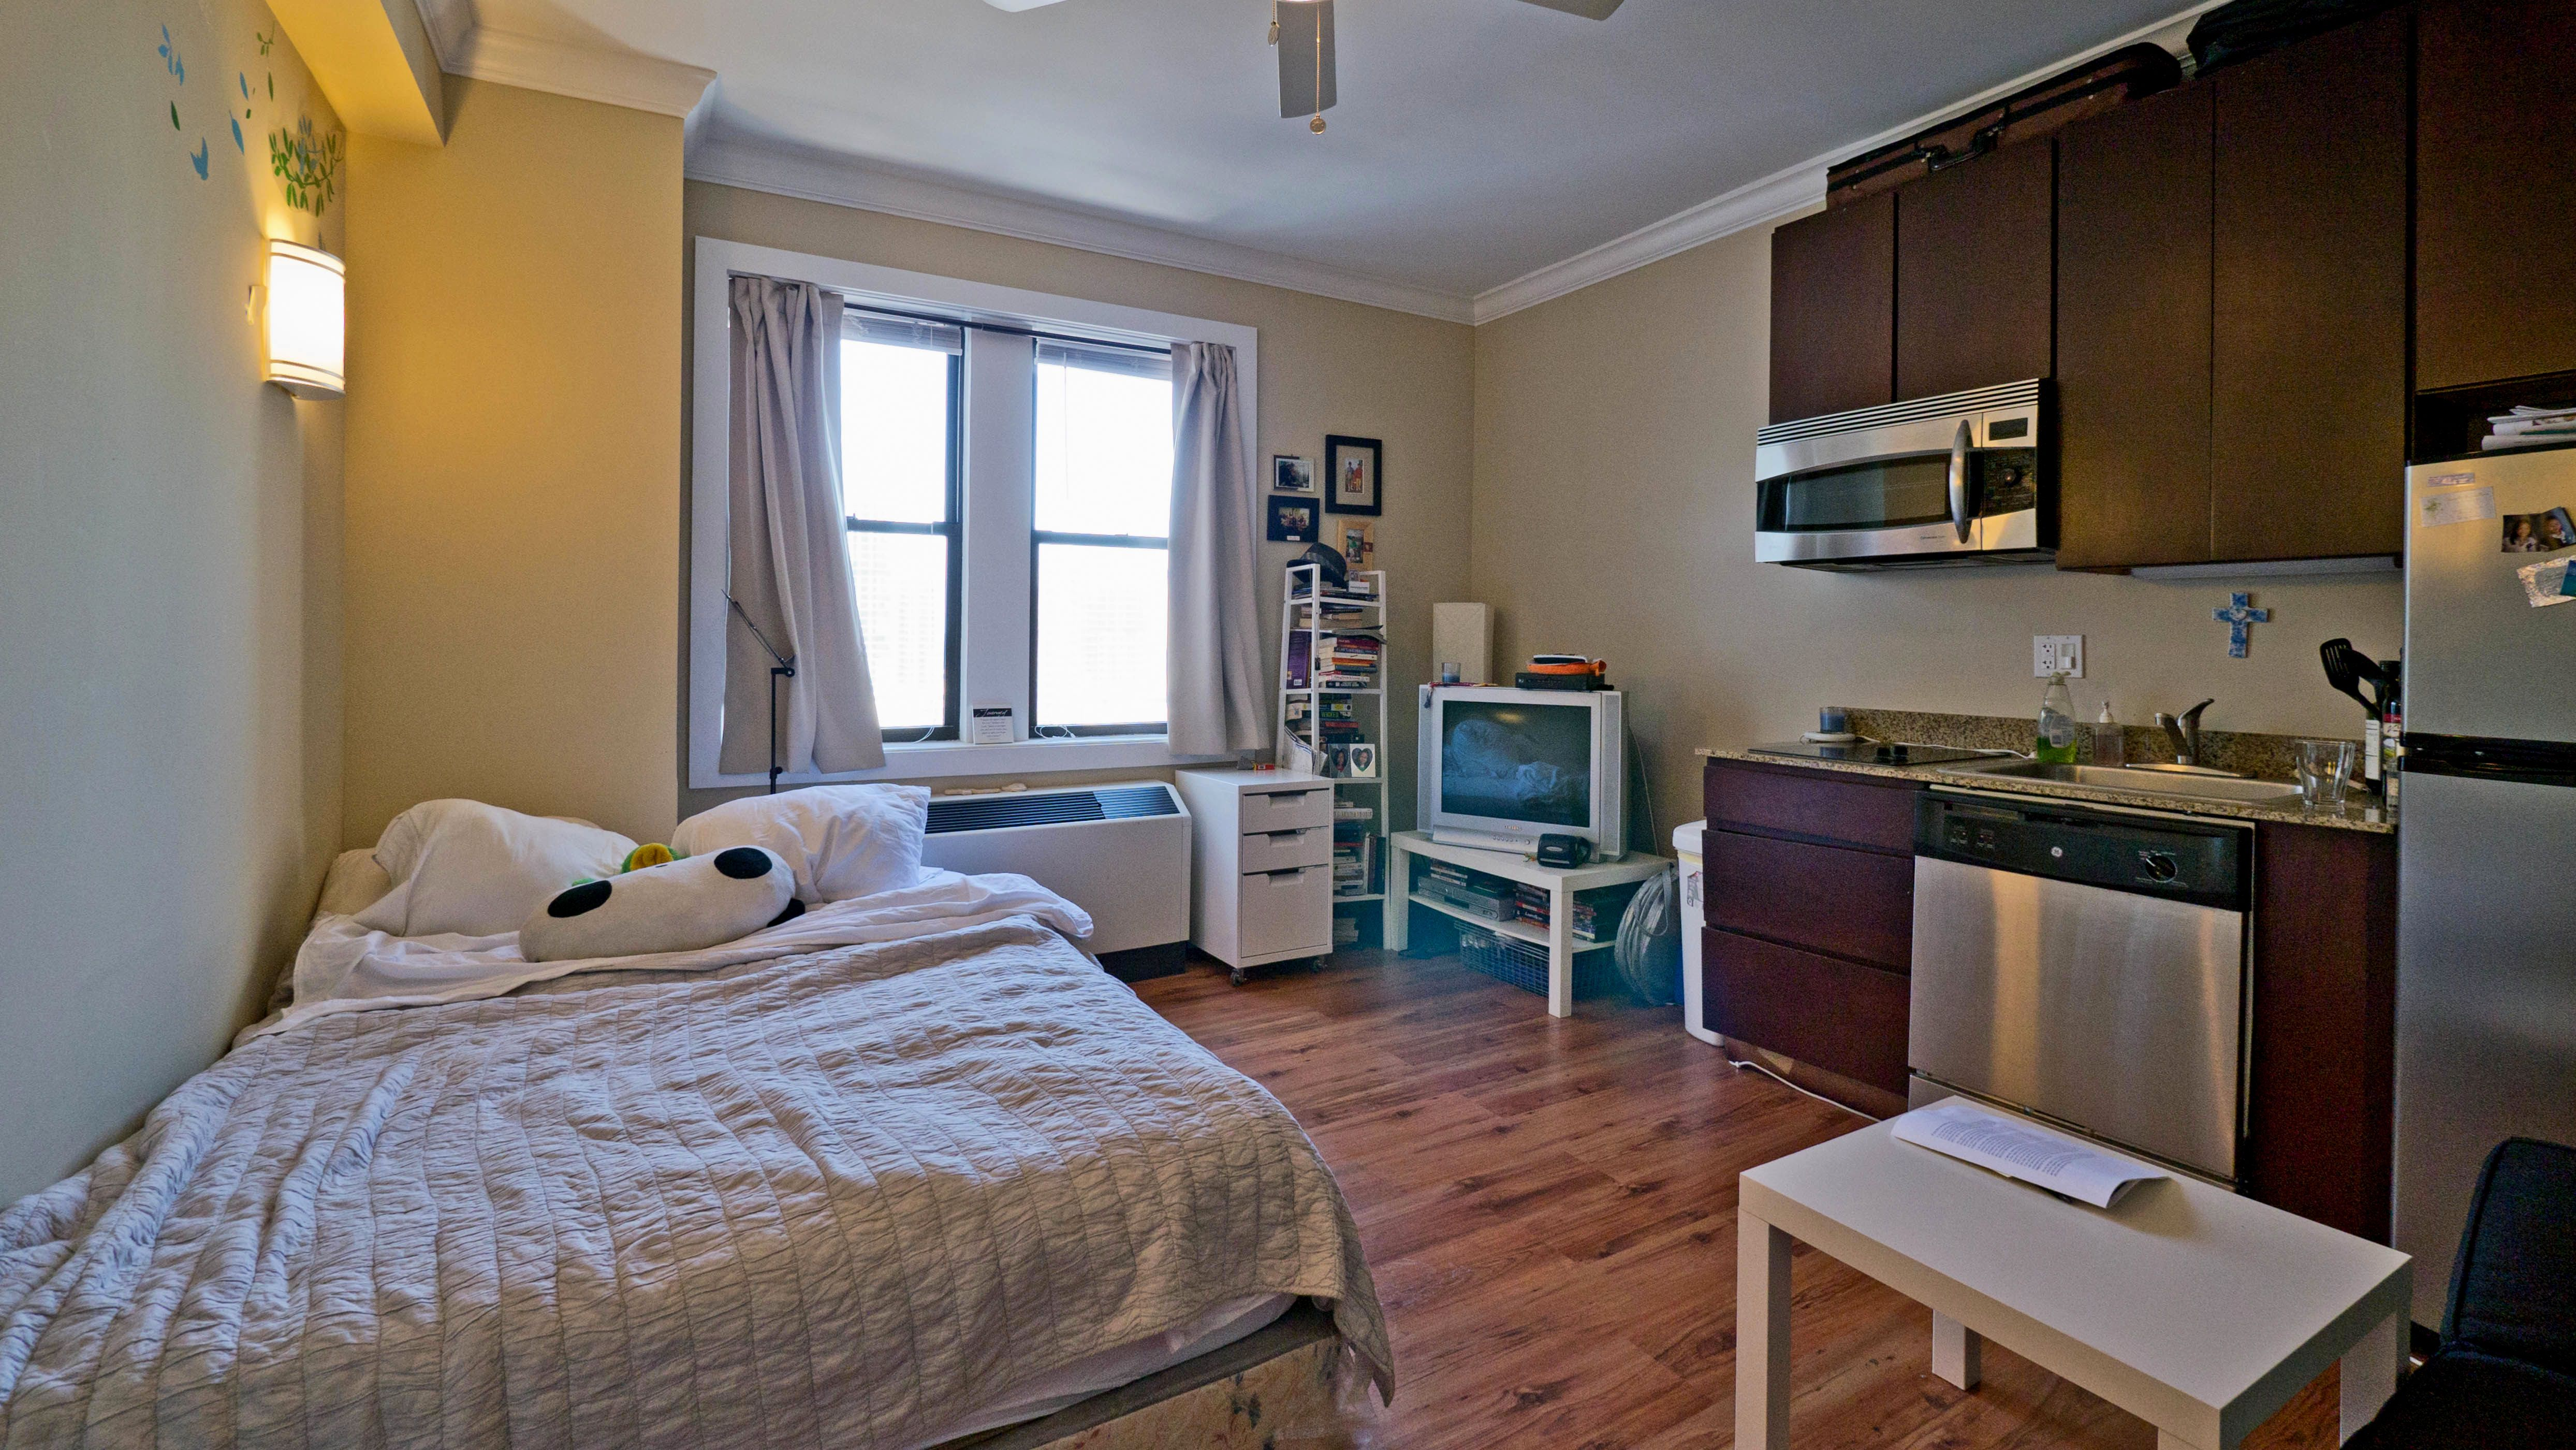 Vintage Small Apartment Renting a house, Bedroom